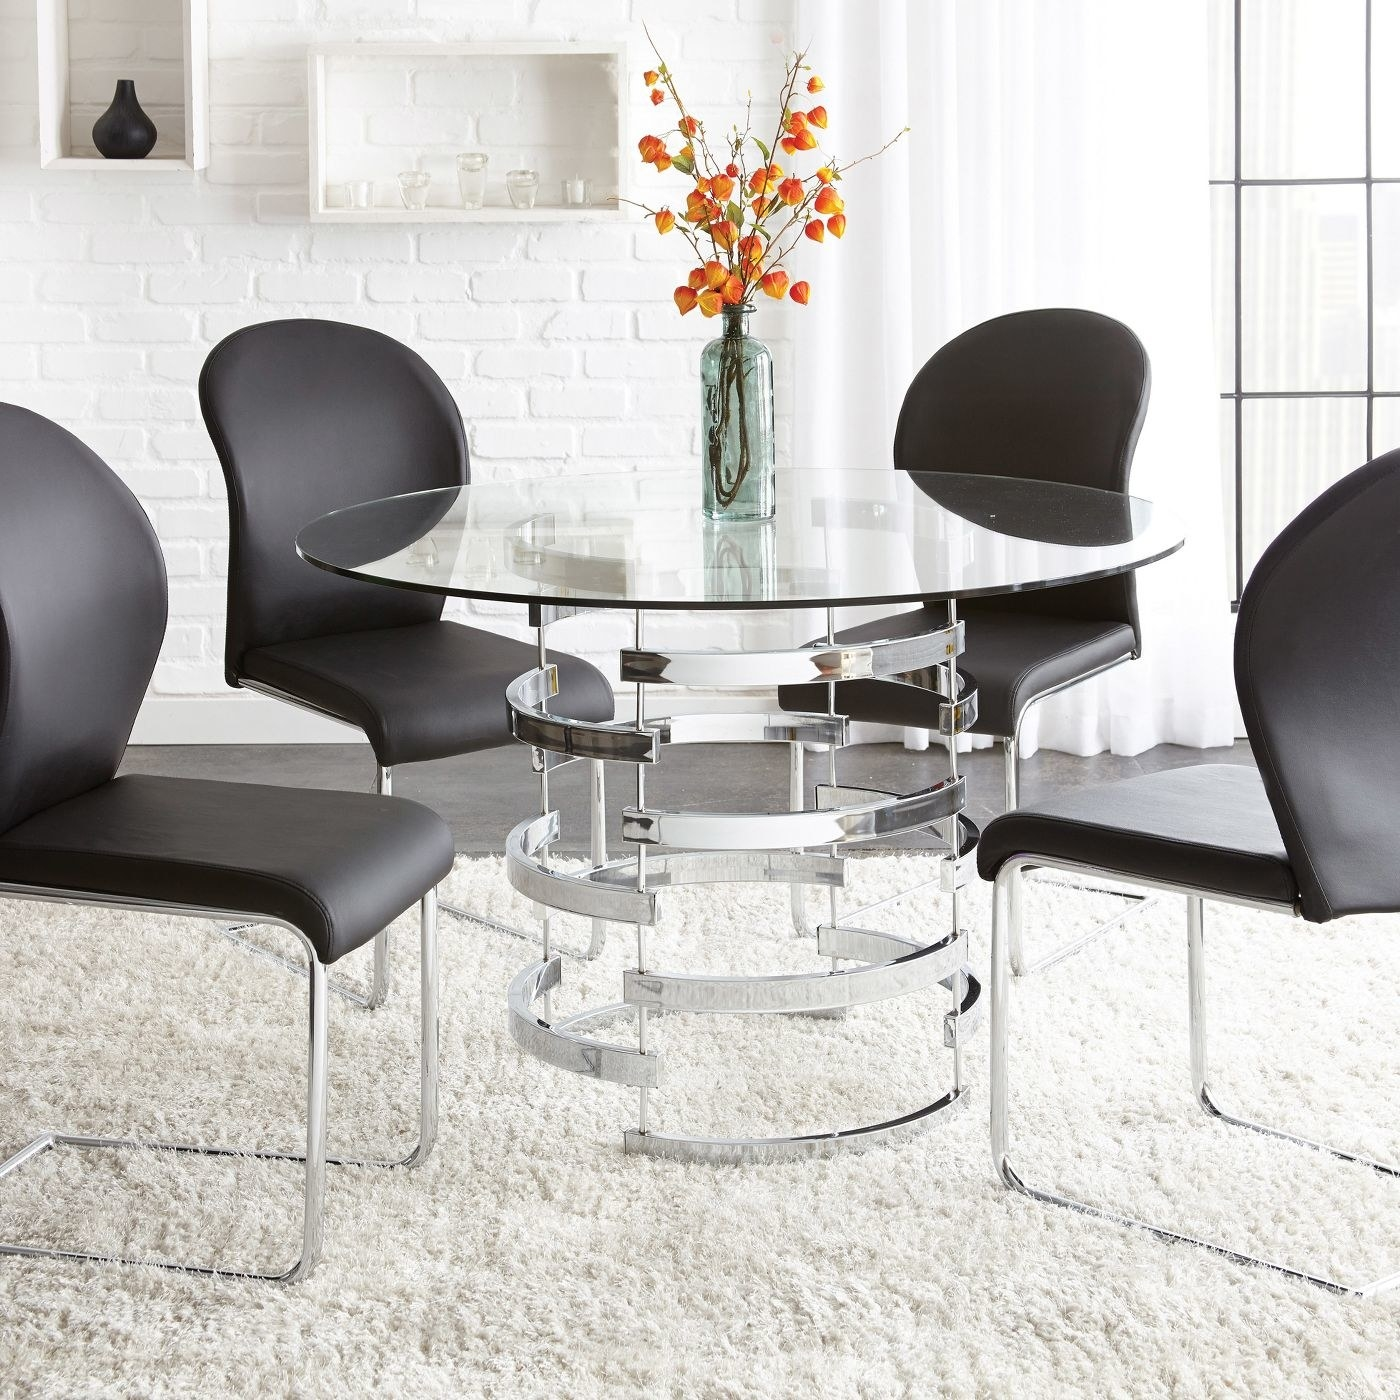 A chrome round dining table with a glass top